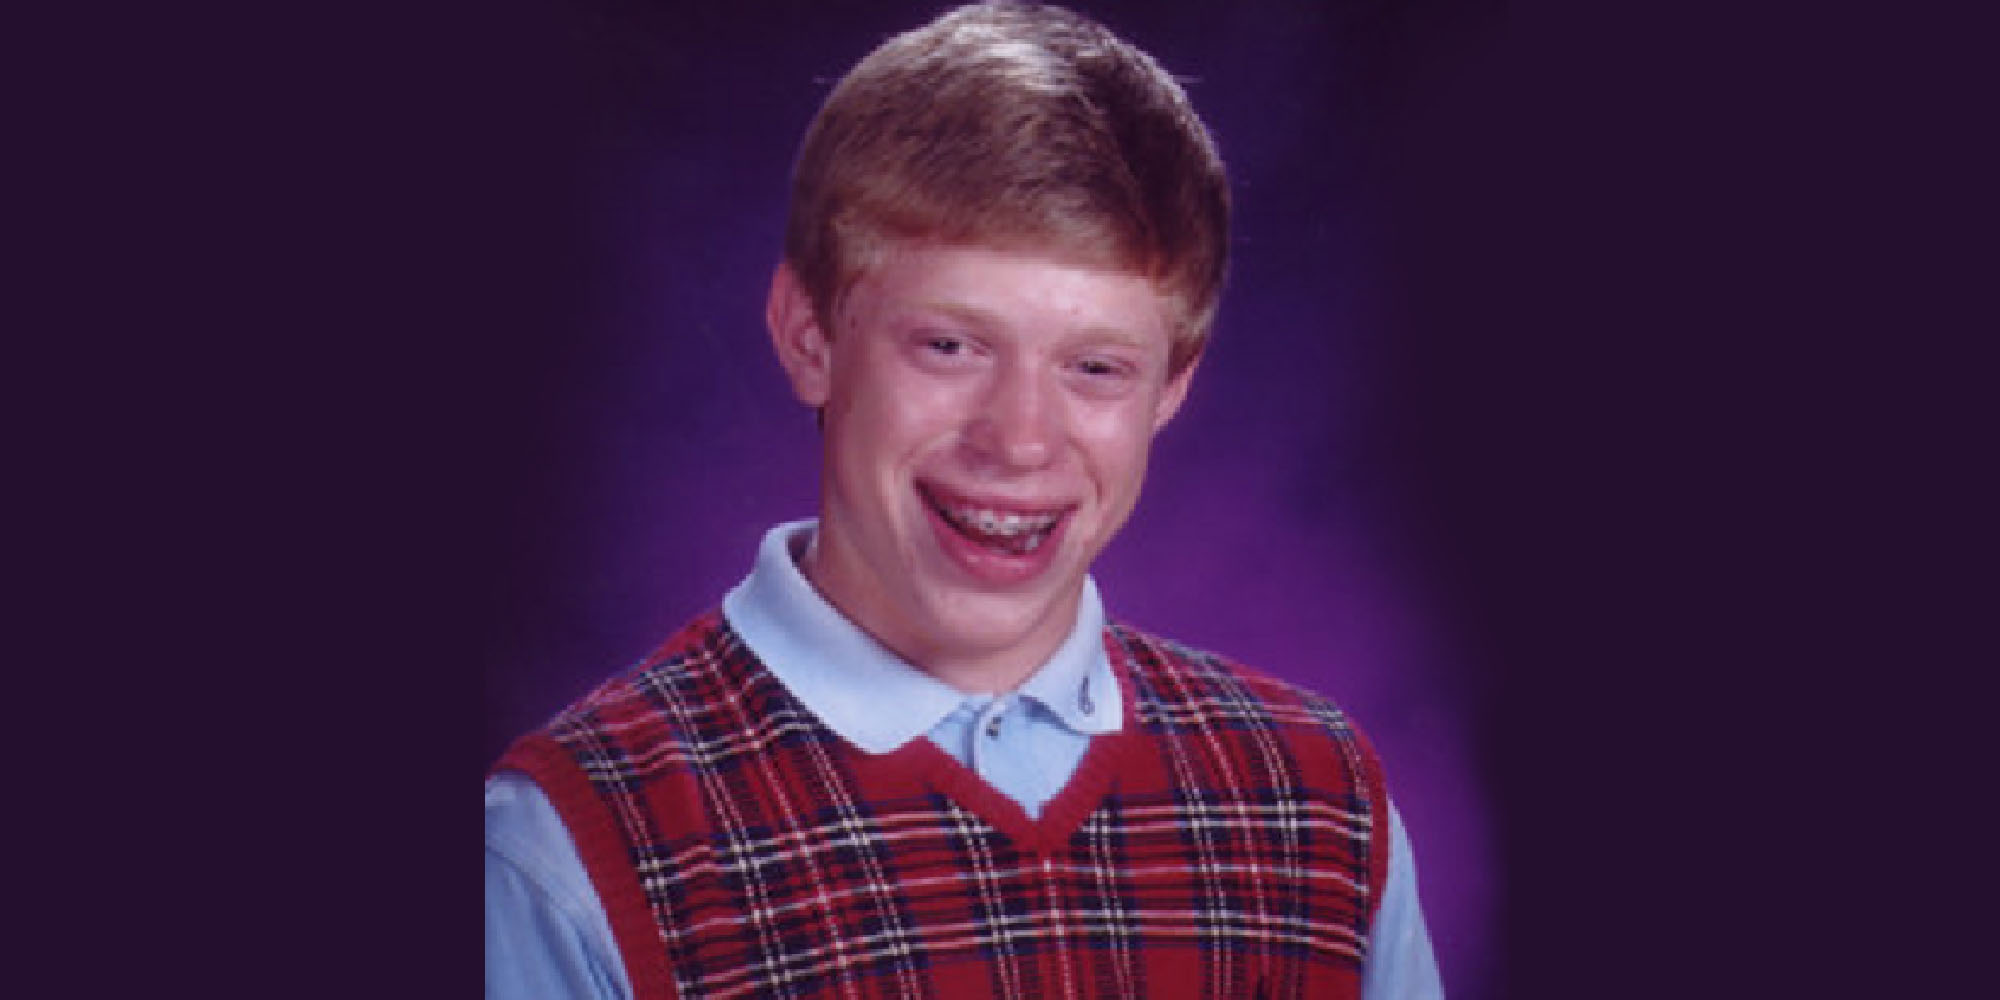 Meme Bad Luck Brian Meme of the Week: Bad ...